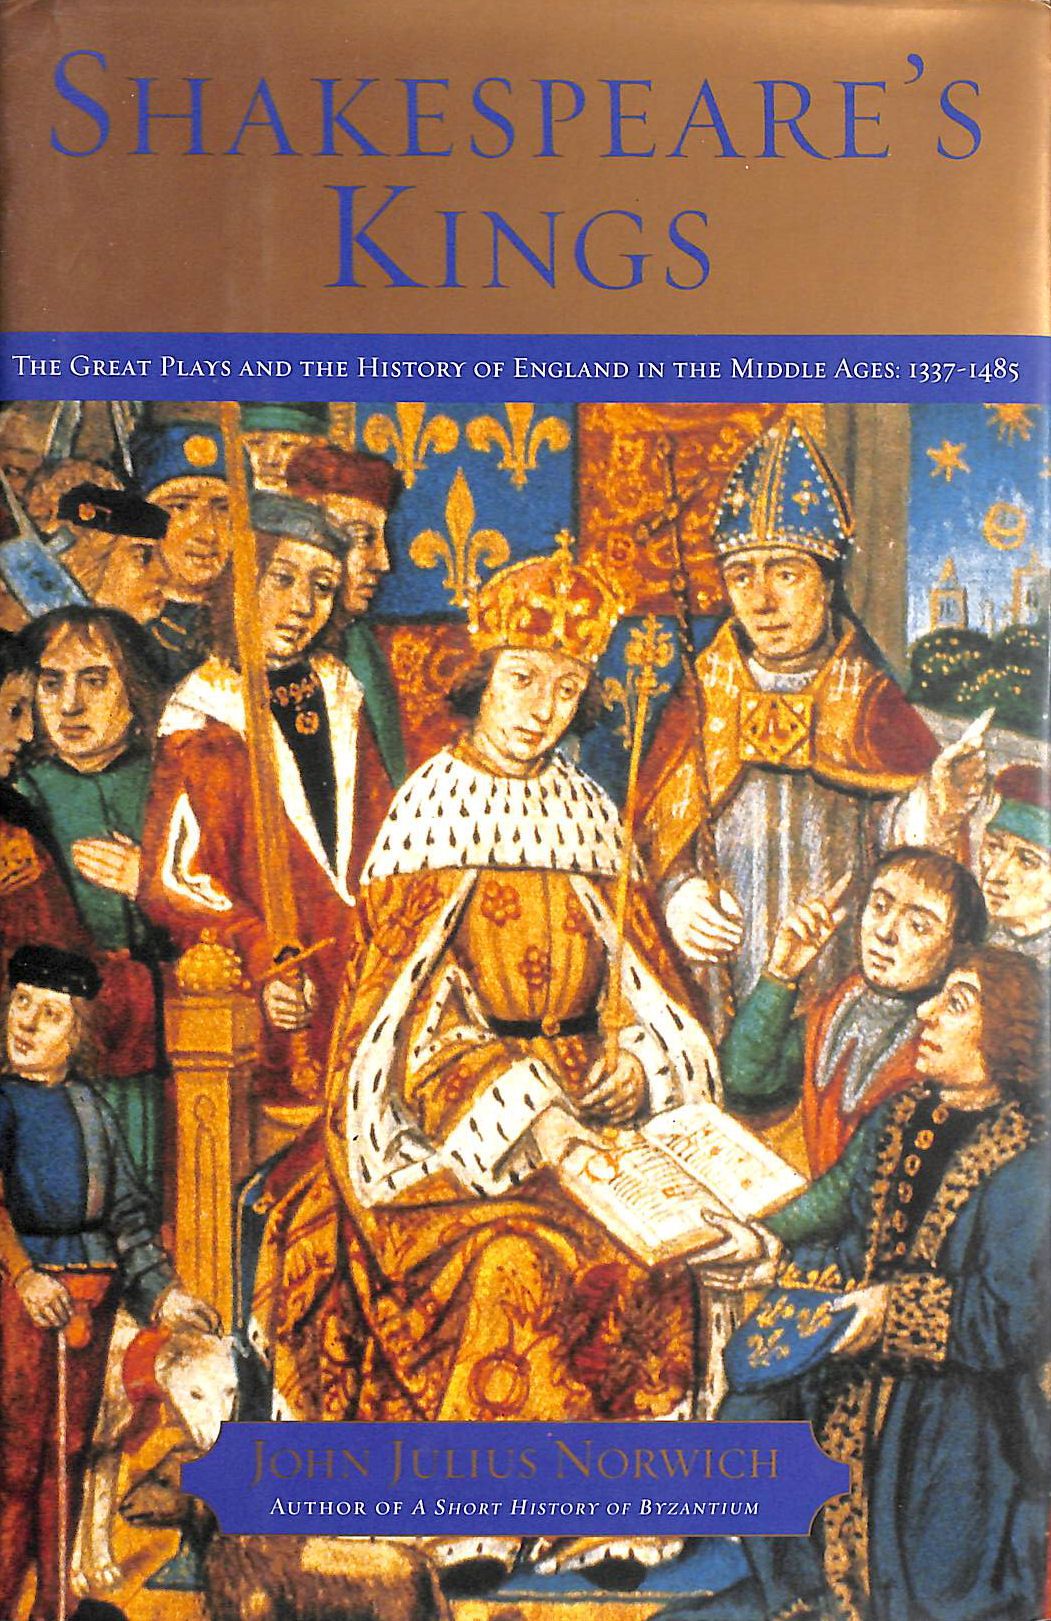 Image for Shakespeare's Kings: The Great Plays And The History Of England In The Middle Ages 1337-1485